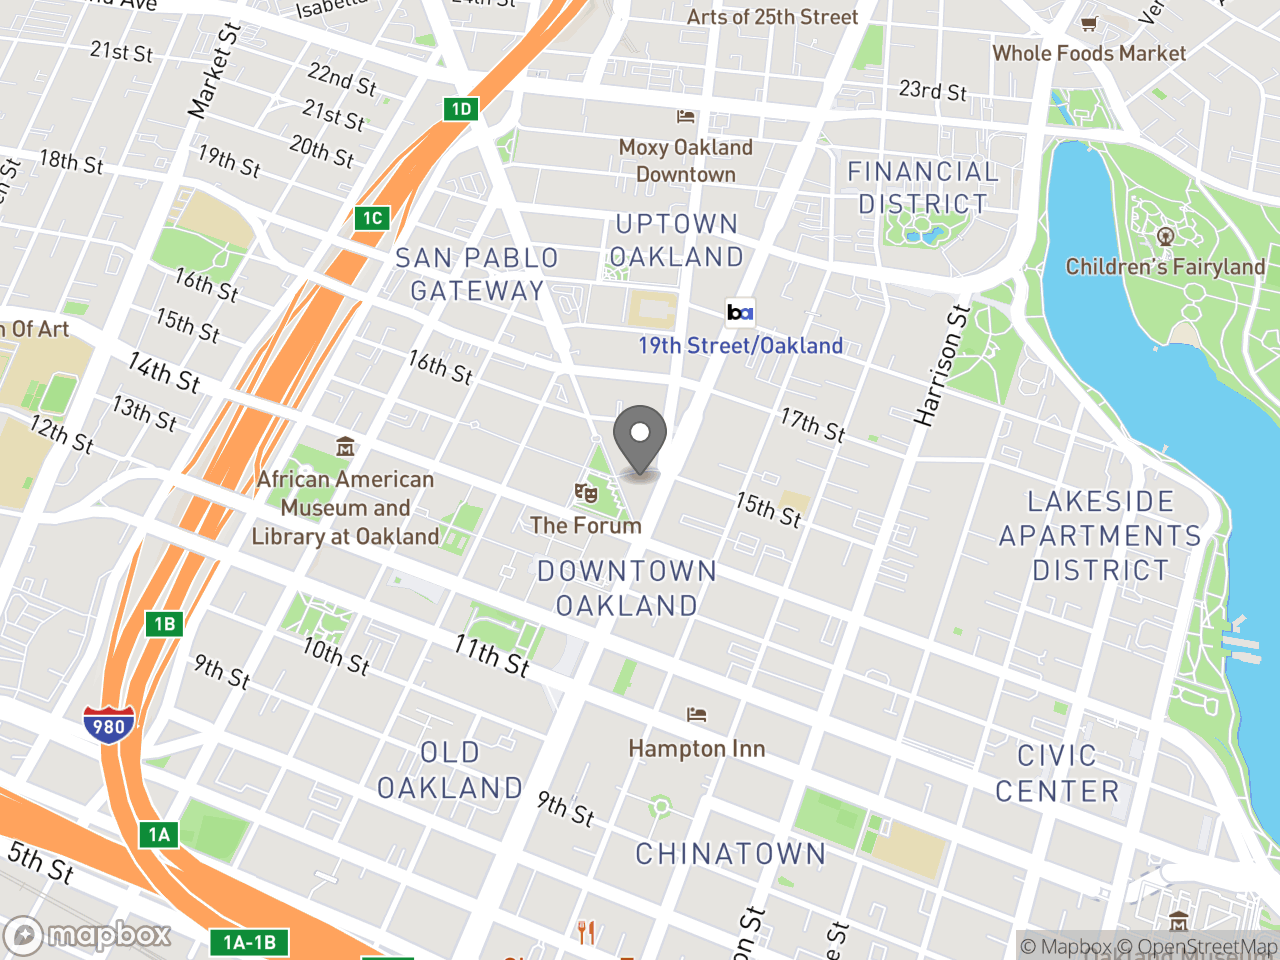 Map image for Child and Youth Services, located at 150 Frank H. Ogawa Plaza in Oakland, CA 94612